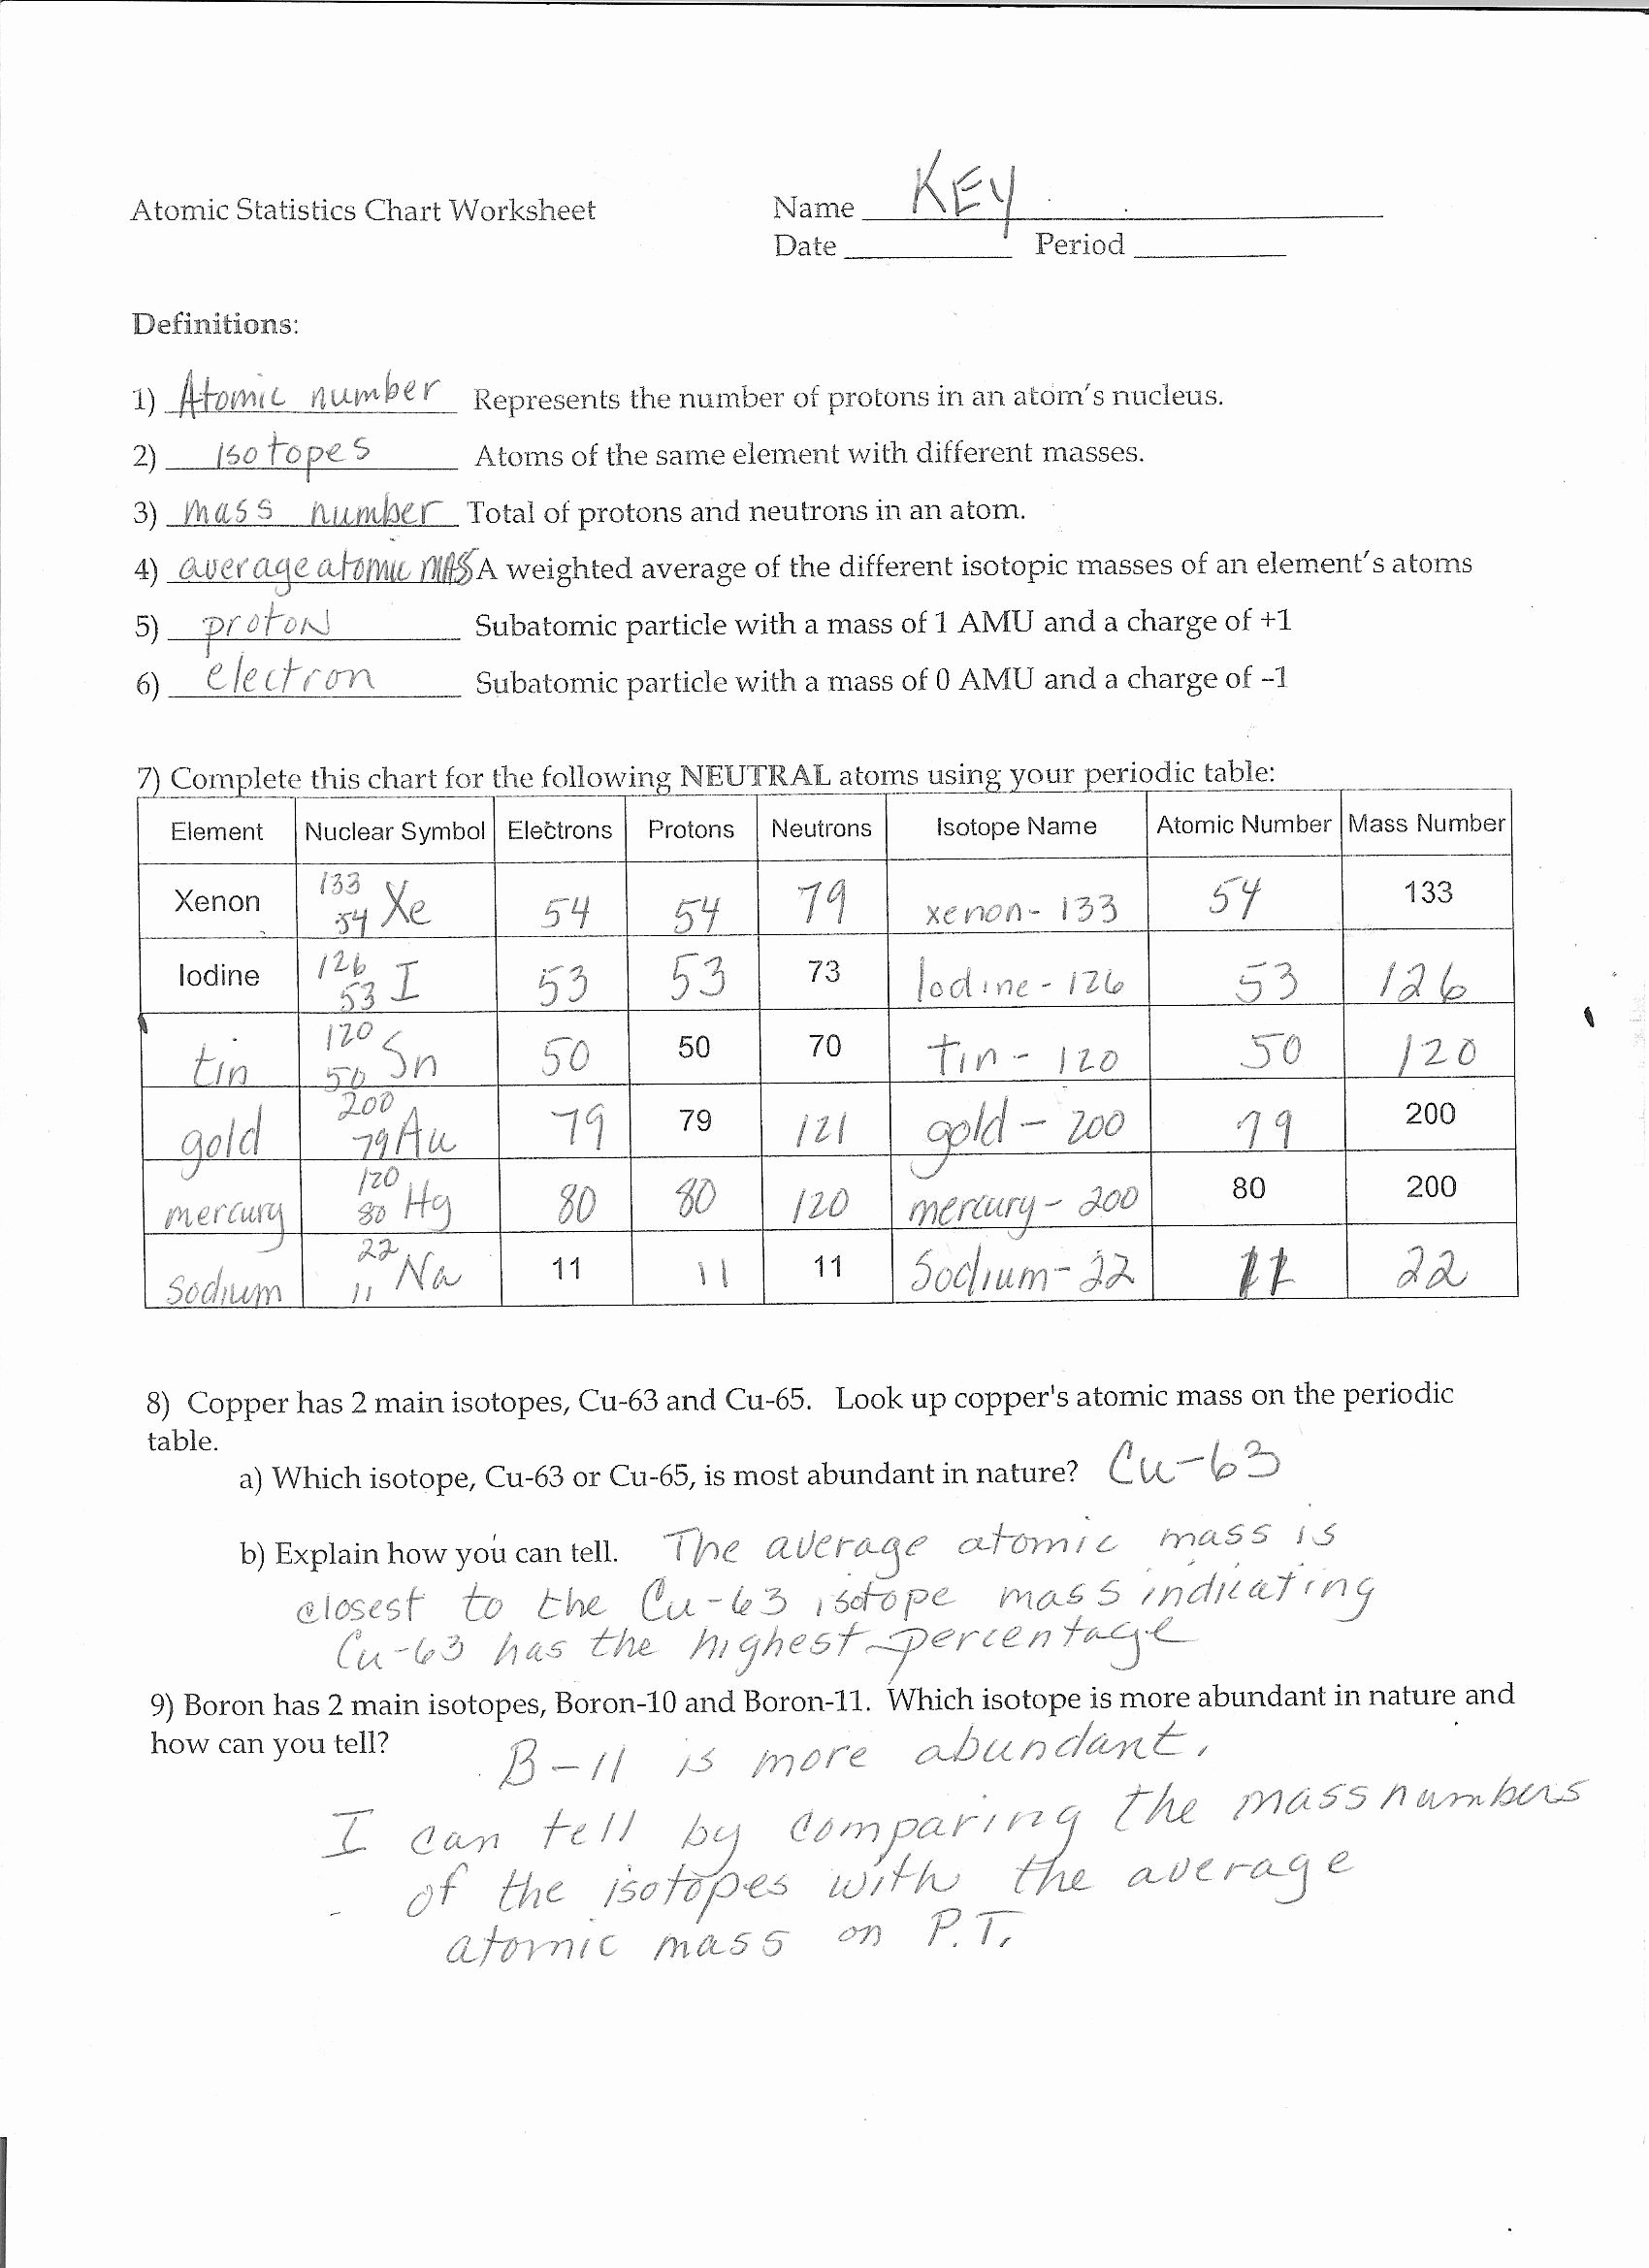 Atomic Structure Practice Worksheet Answers Best Of Worksheet atomic Structure and isotopes